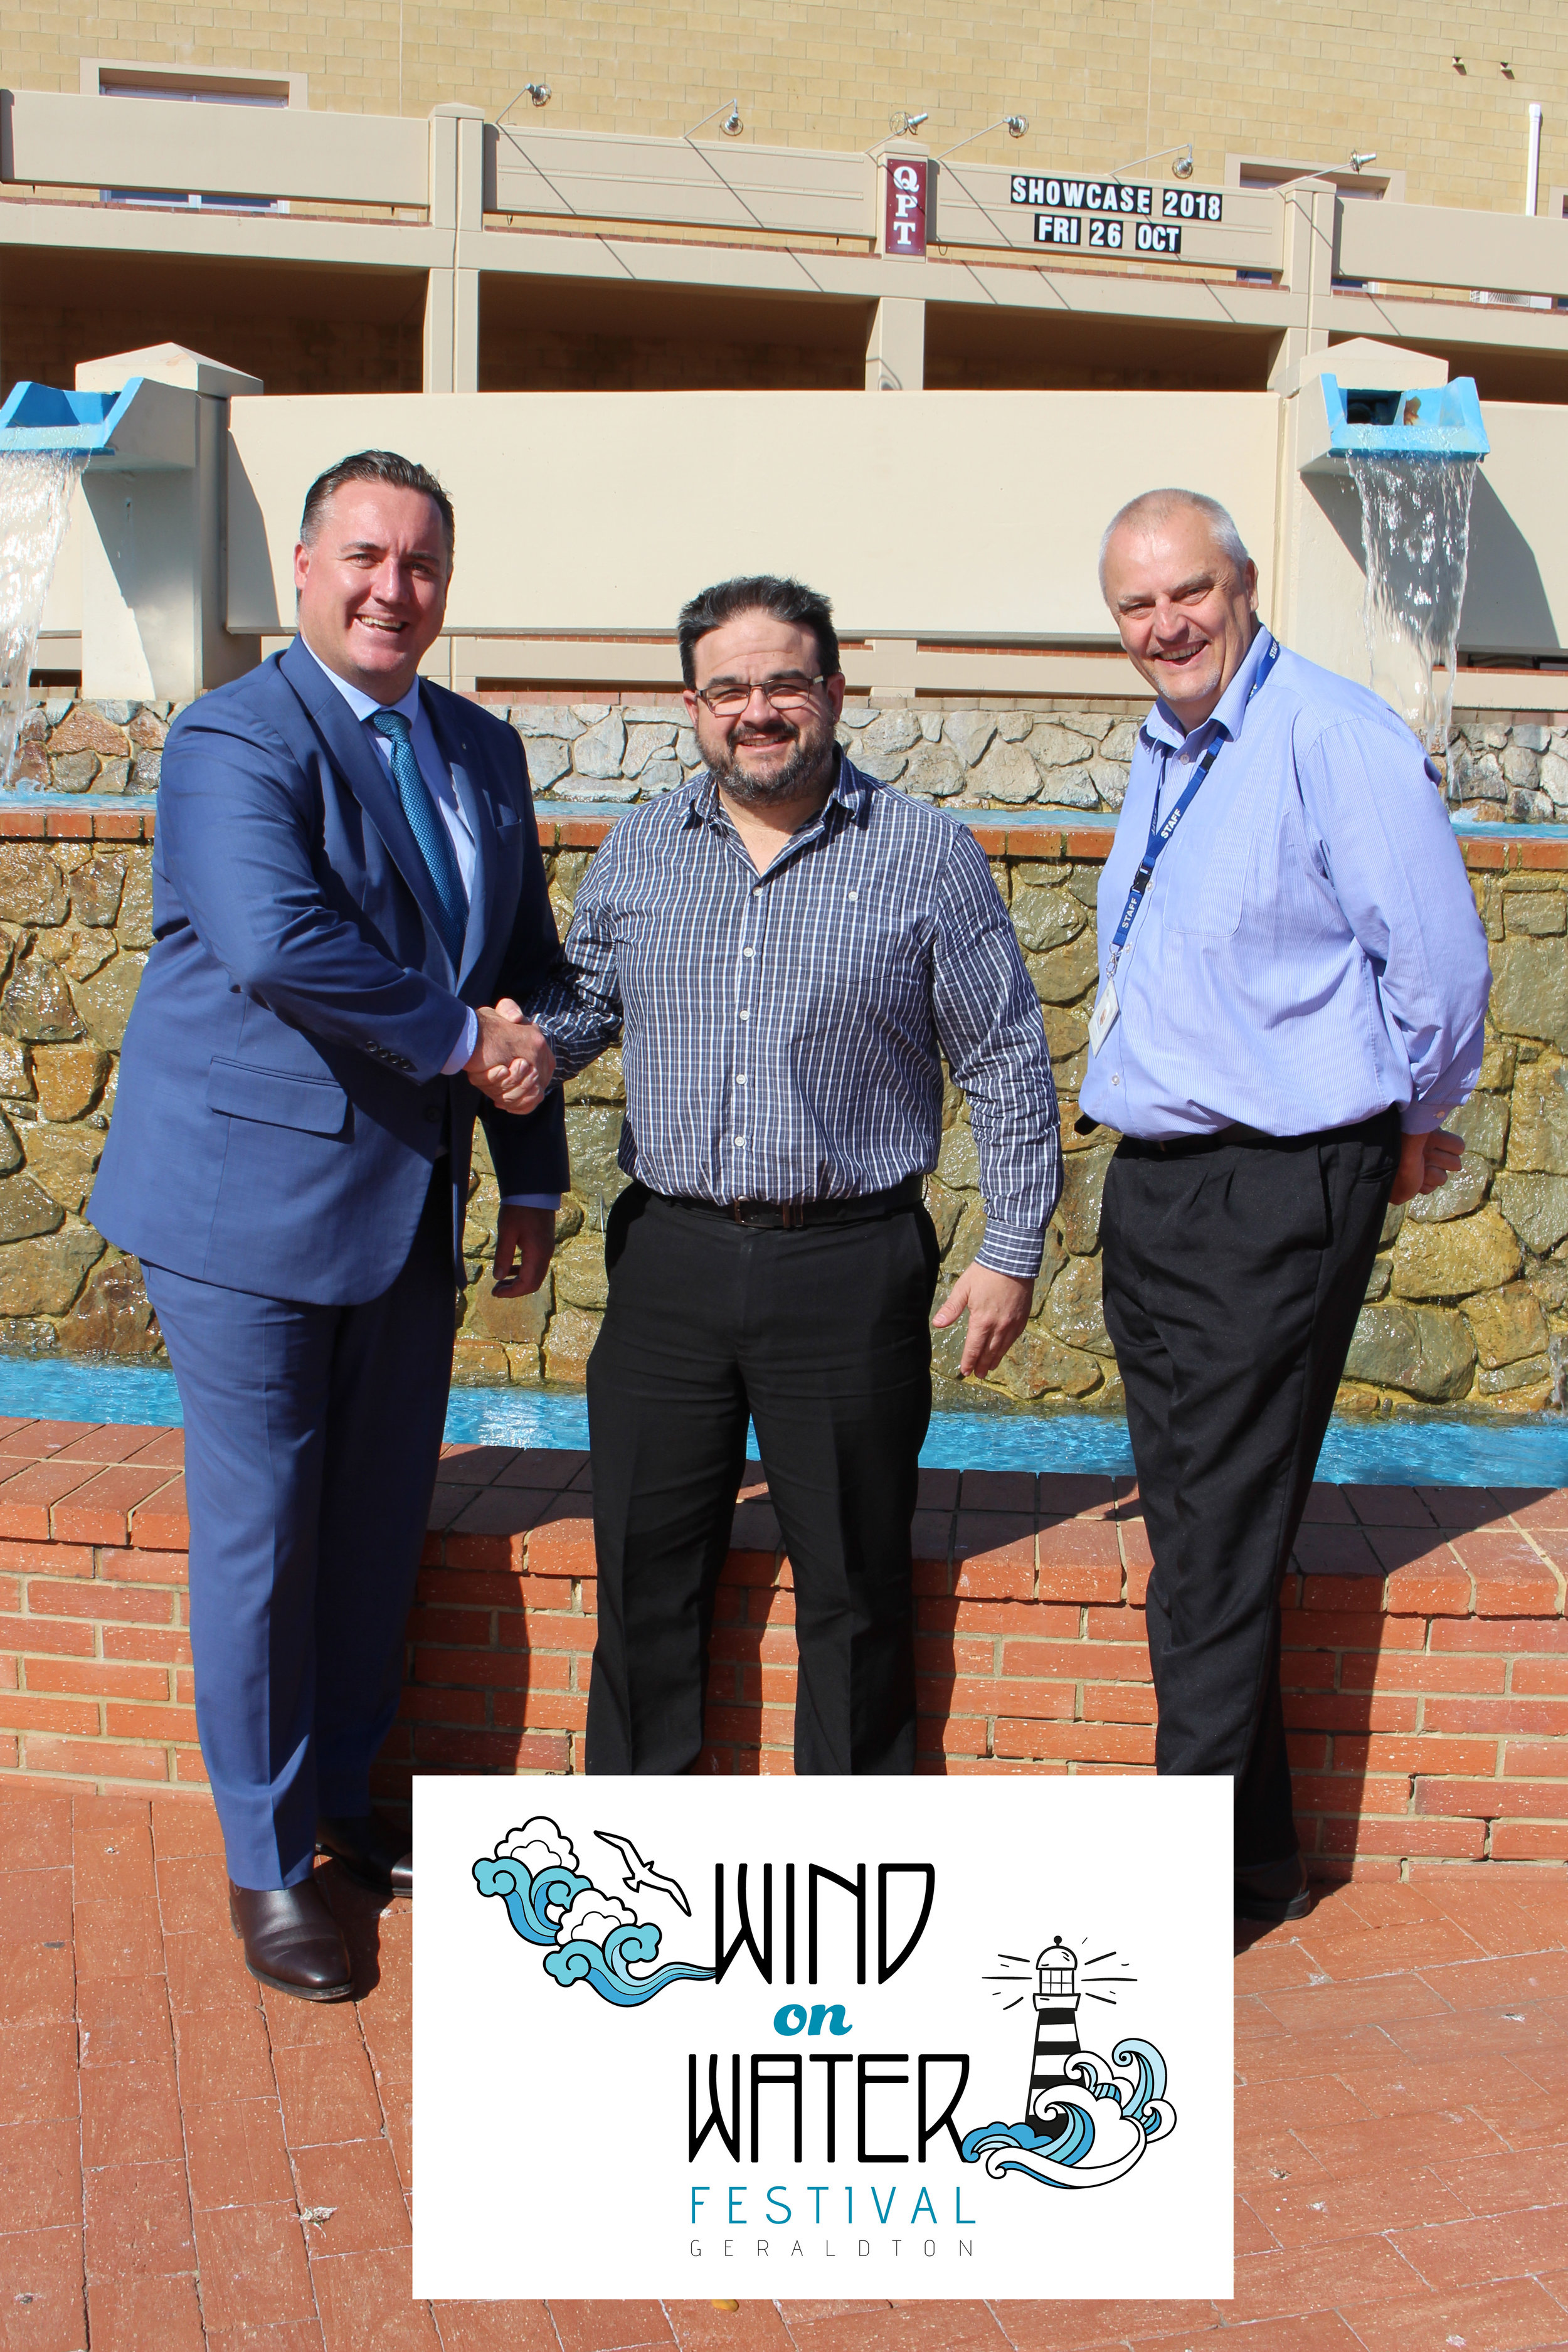 City of Greater Geraldton Mayor Shane Van Styn (from left) Seven West Media Midwest Regional Manager Jason McCarthy and City CEO Ross McKim seal the renewed deal for RedFM to sponsor the 2019 WoW Festival Concert.